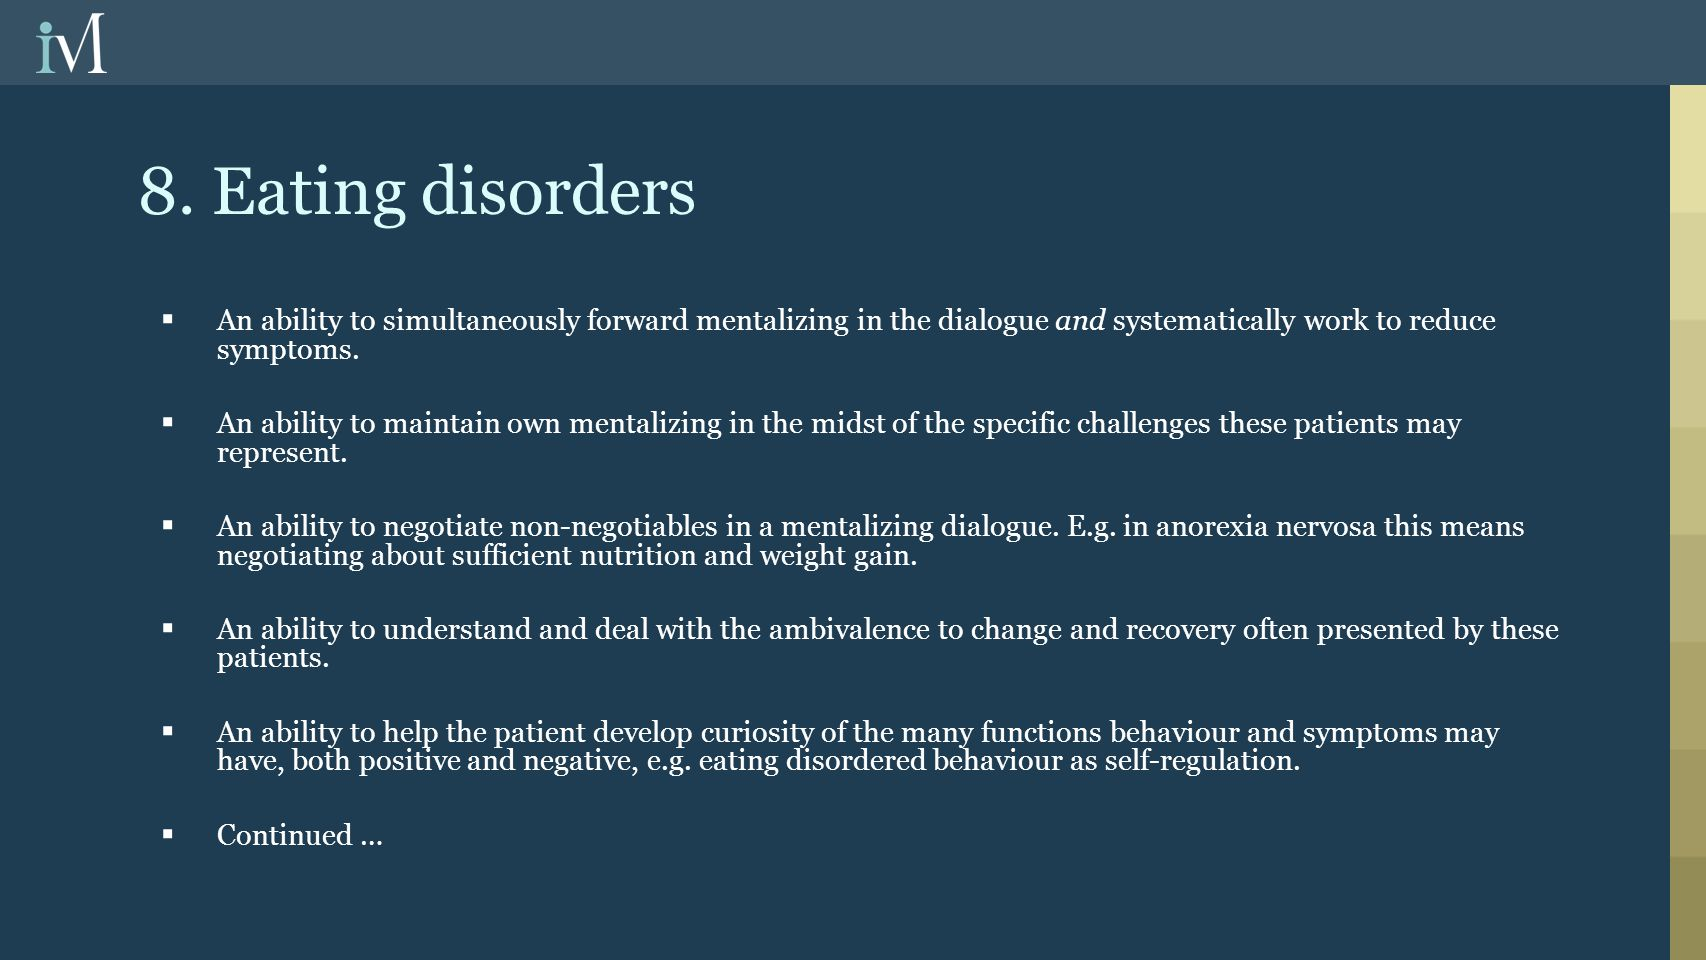 8. Eating disorders An ability to simultaneously forward mentalizing in the dialogue and systematically work to reduce symptoms.